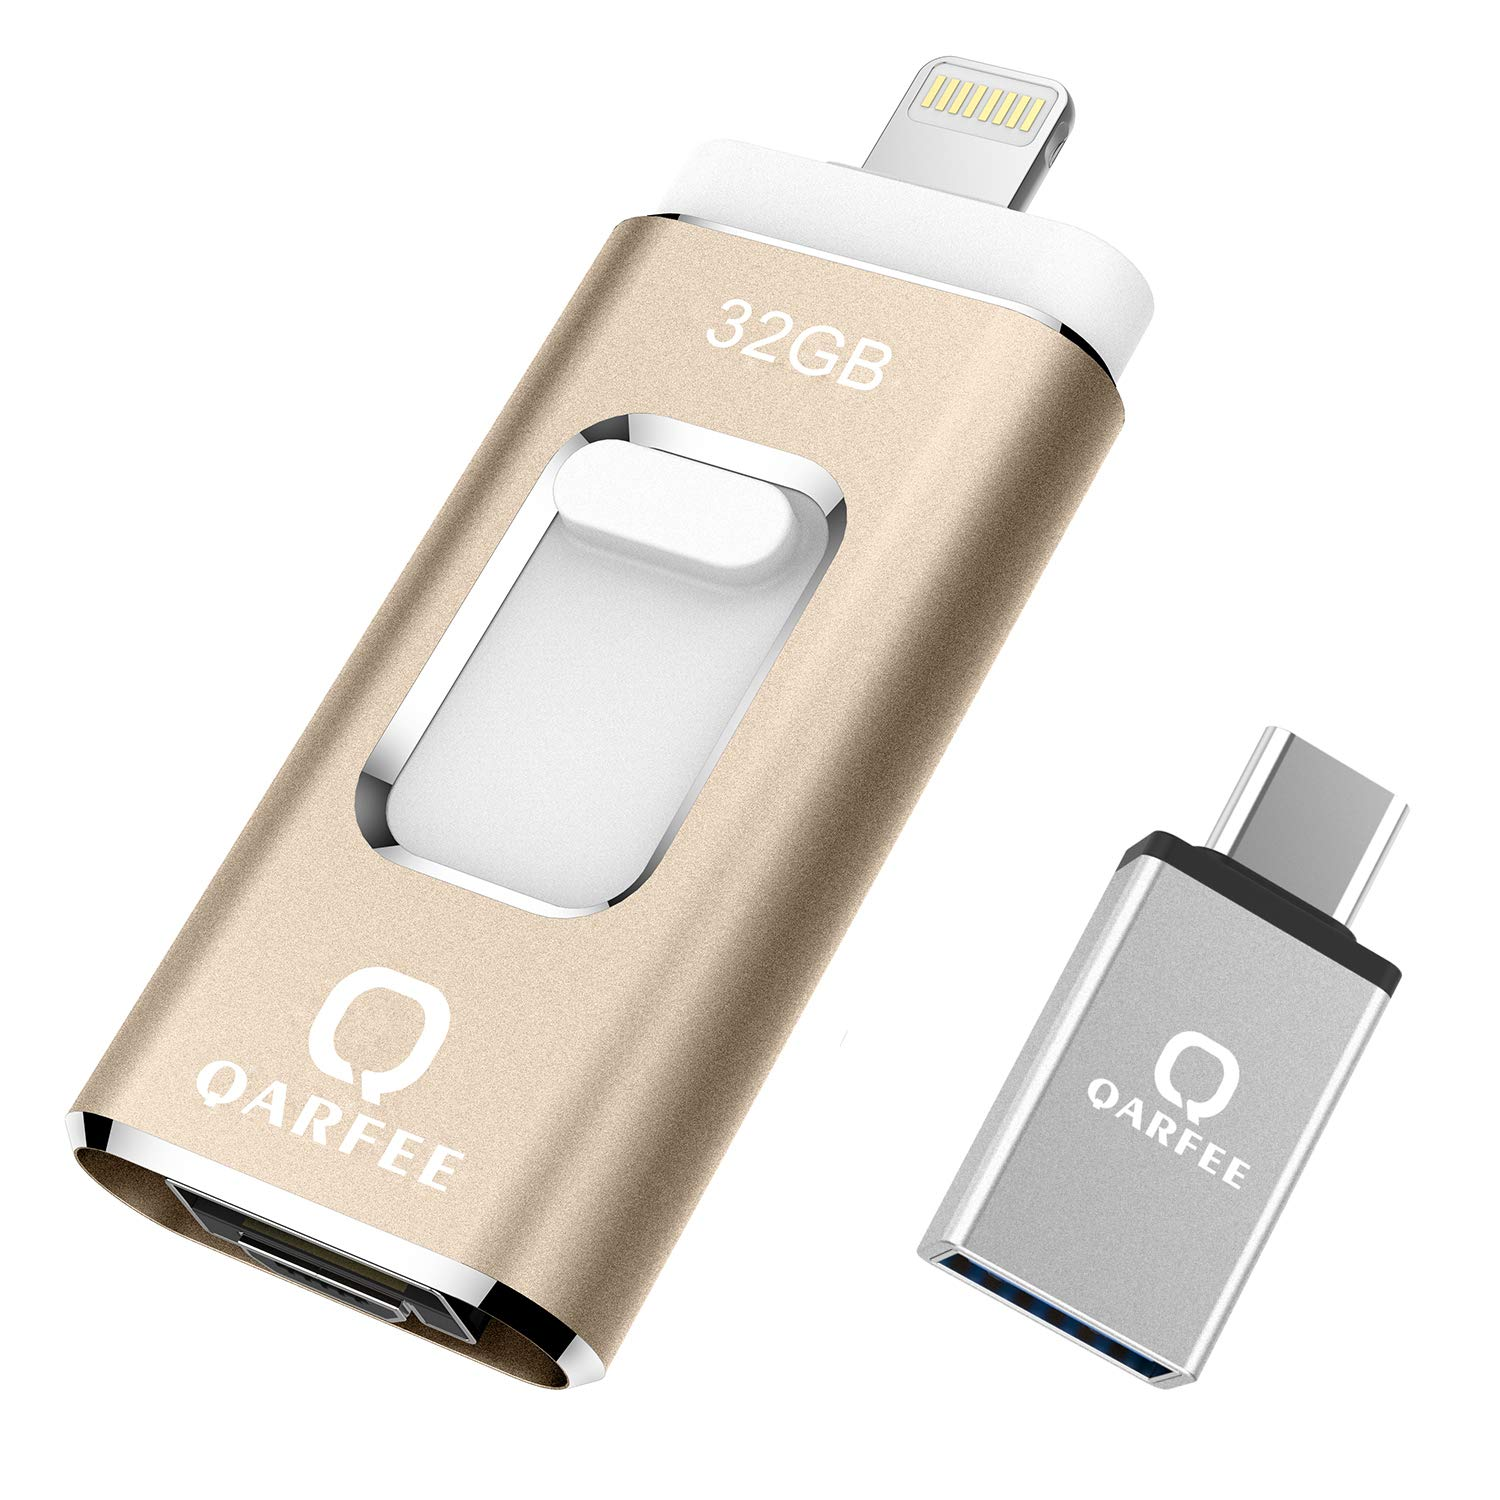 QARFEE Photo Stick, USB (Type-c) Jump Drive Thumb Drive Memory Stick External Storage iOS Flash Drive 32 GB Compatible for iPhone,iPad,iPod,Mac,iOS/Android Cell Phone and PC (Gold)